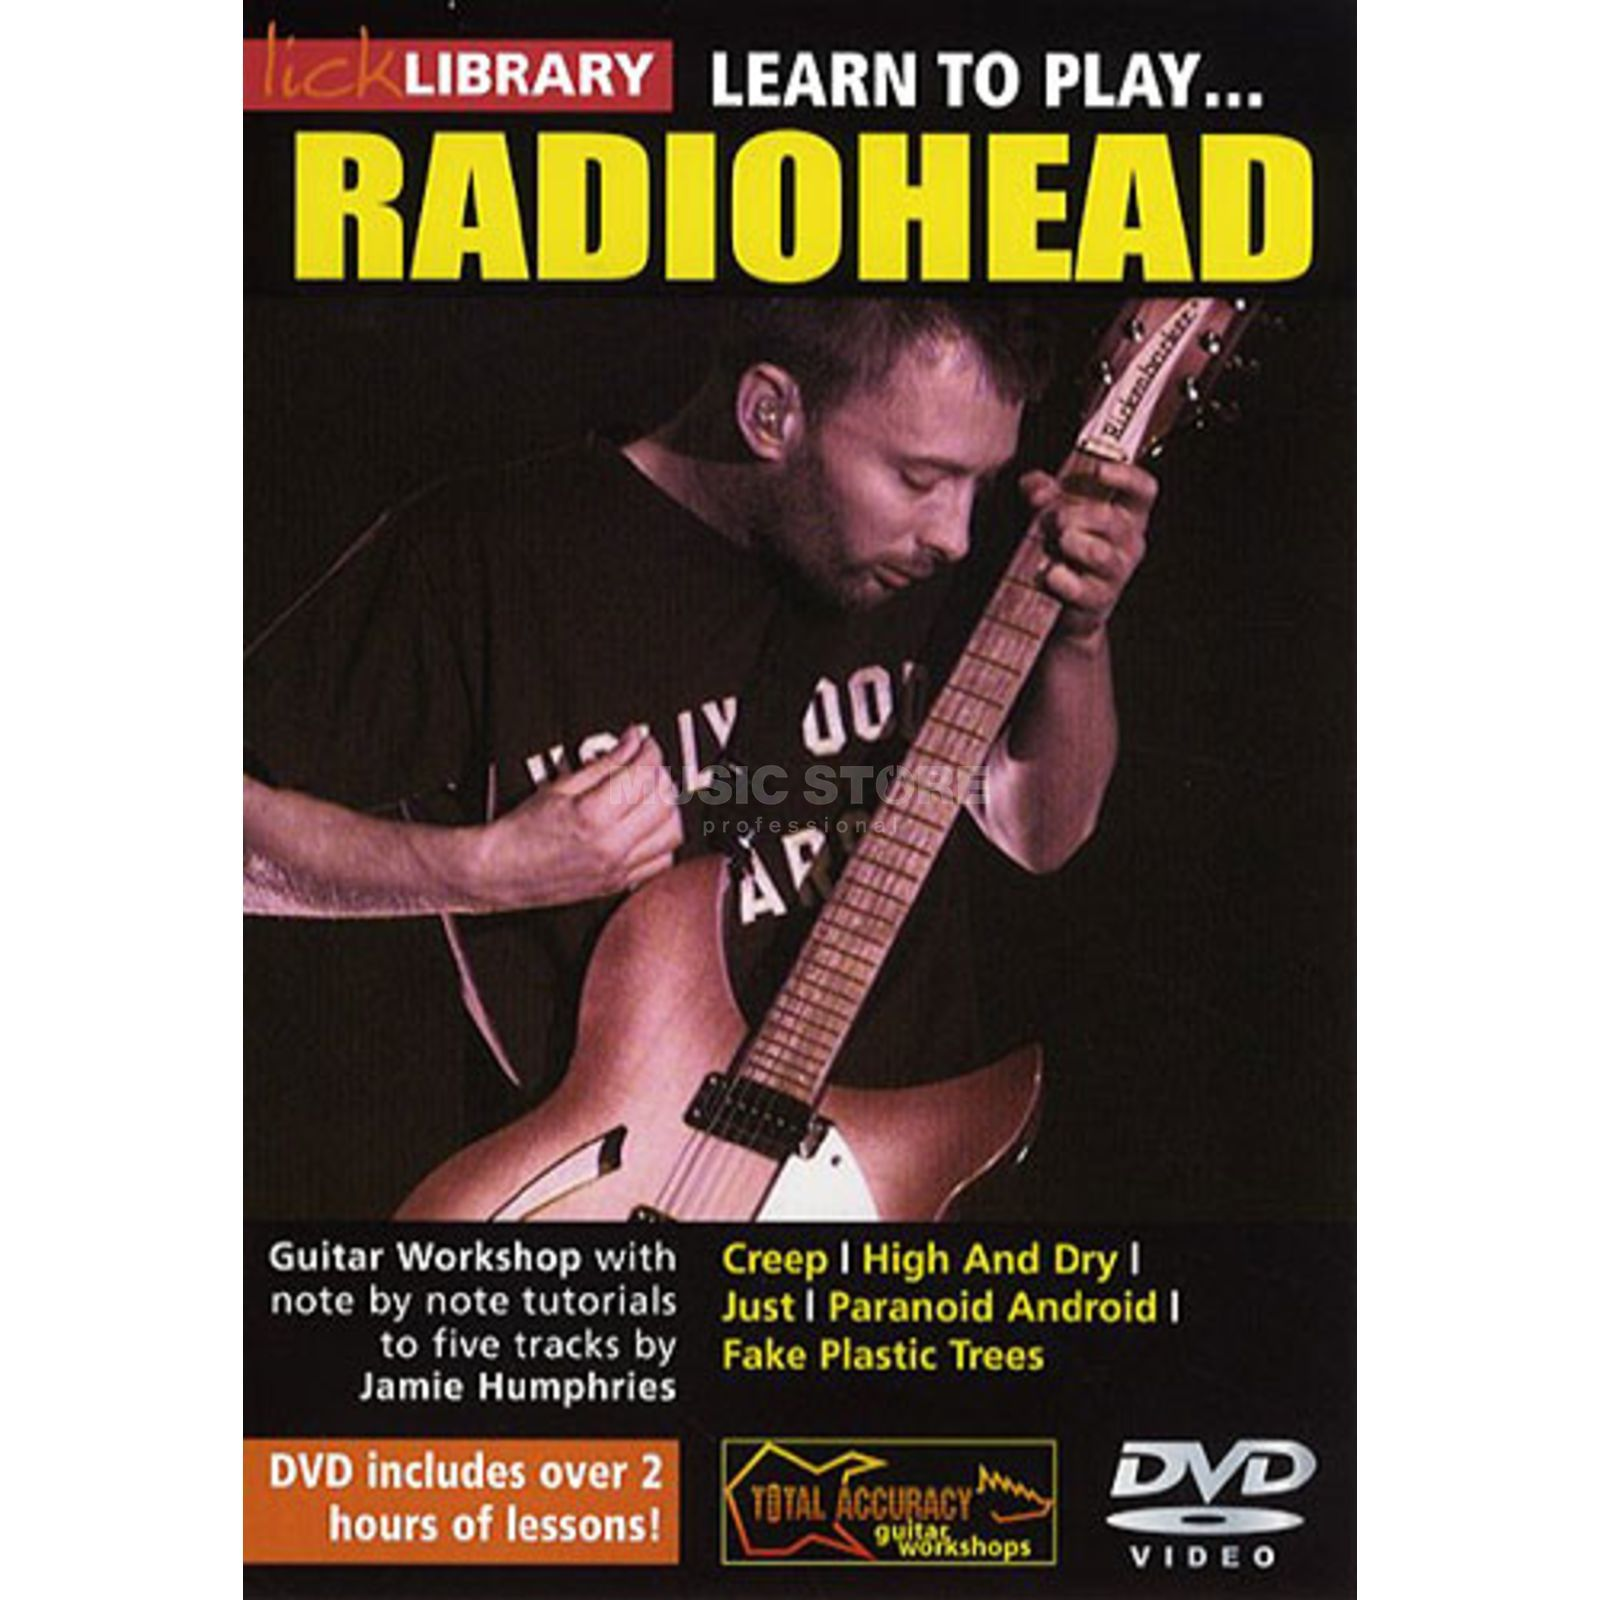 Roadrock International Lick Library: Learn To Play Radiohead DVD Produktbild